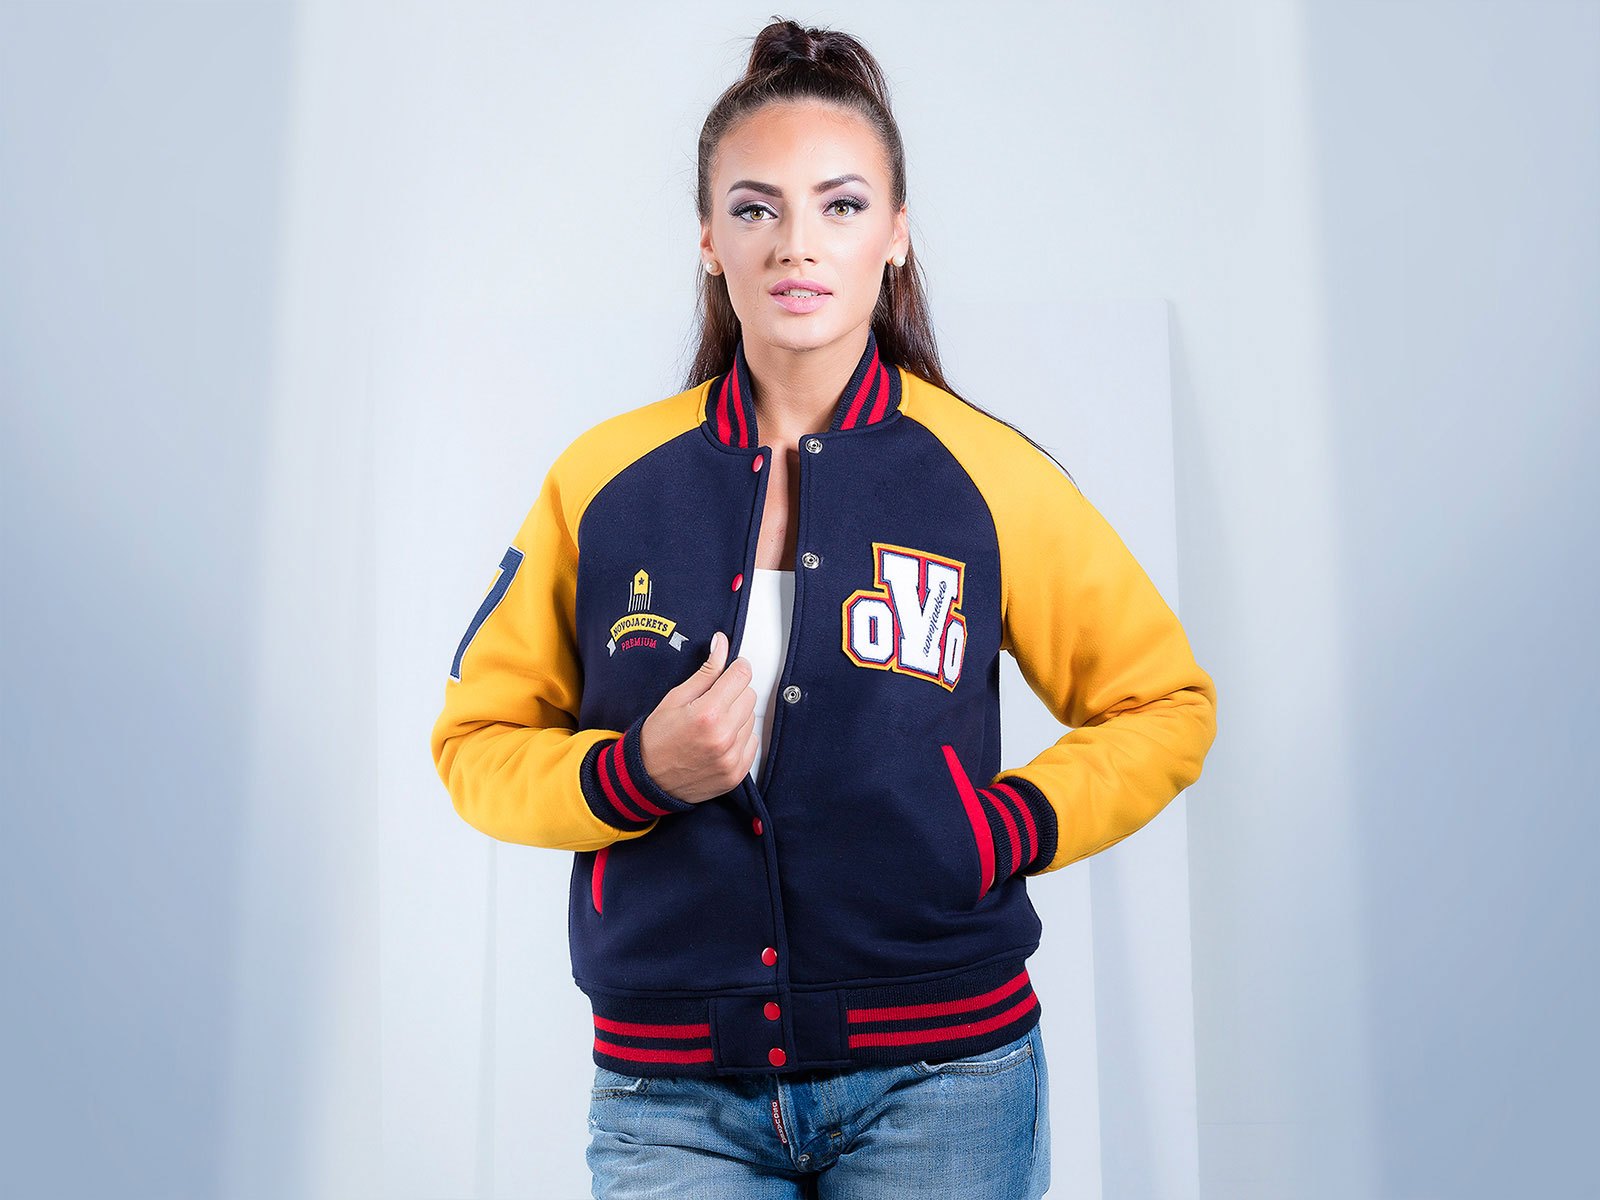 Personalize these letterman jackets with your own text and art. These jackets are No Minimums · Fast Shipping · Group Discounts · Excellent Print QualityTypes: Letterman Jackets, Bomber Jackets, Track Jackets.